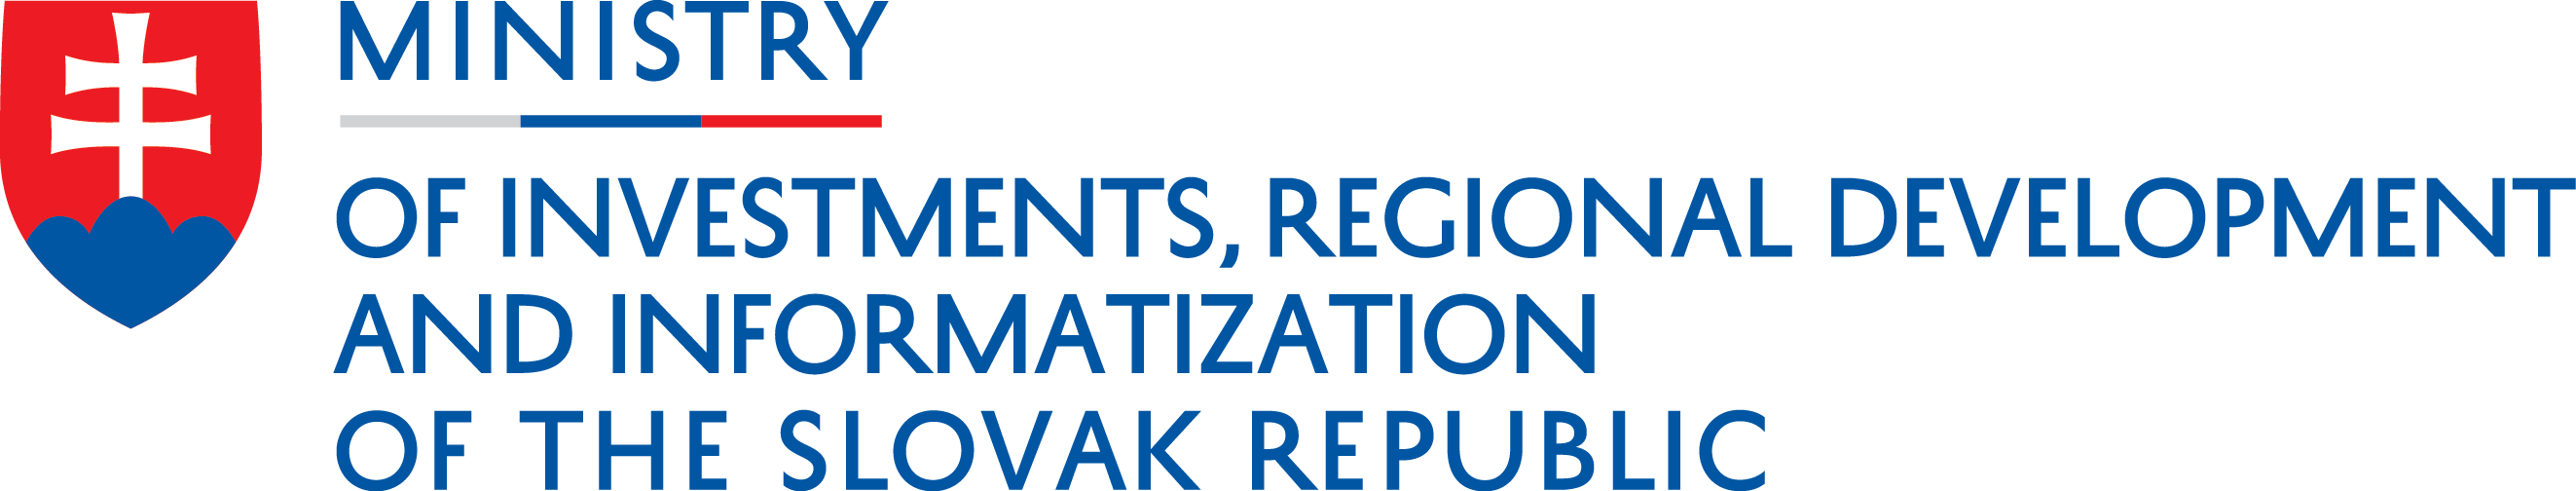 Ministry of Investments, Regional Development and Informatization of the Slovak Republic